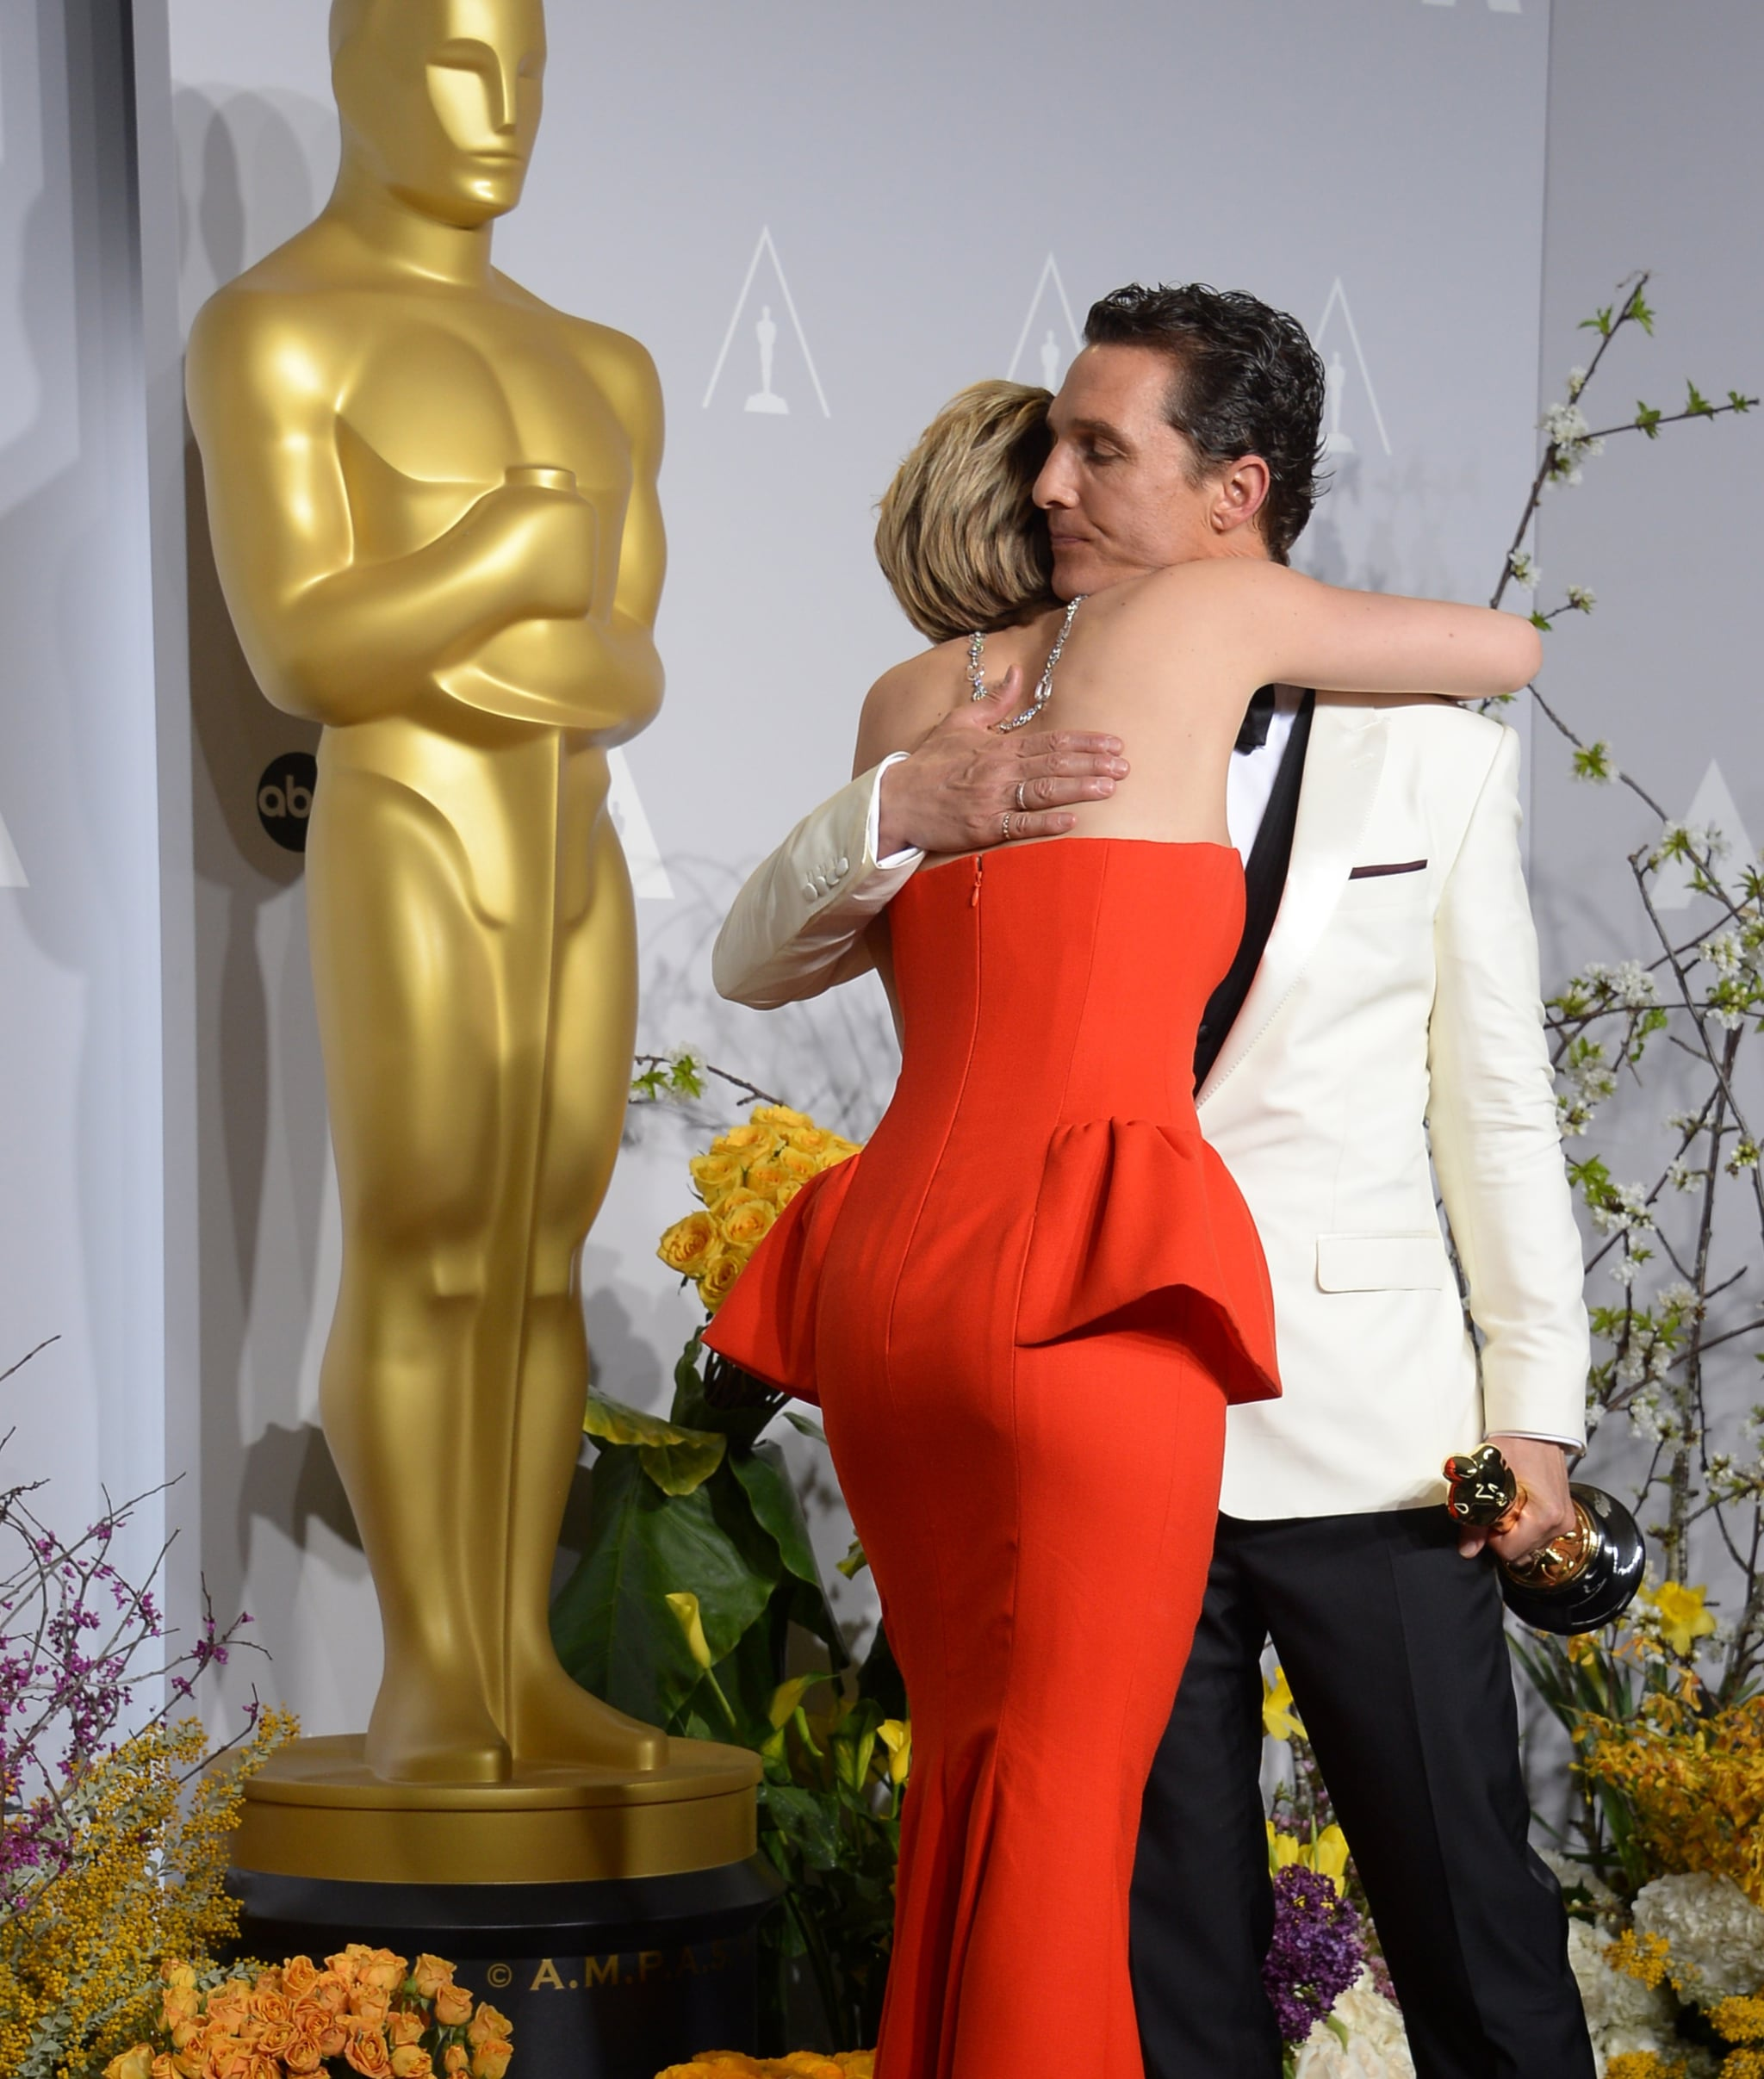 Lawrence hugged McConaughey. All together now: aww!